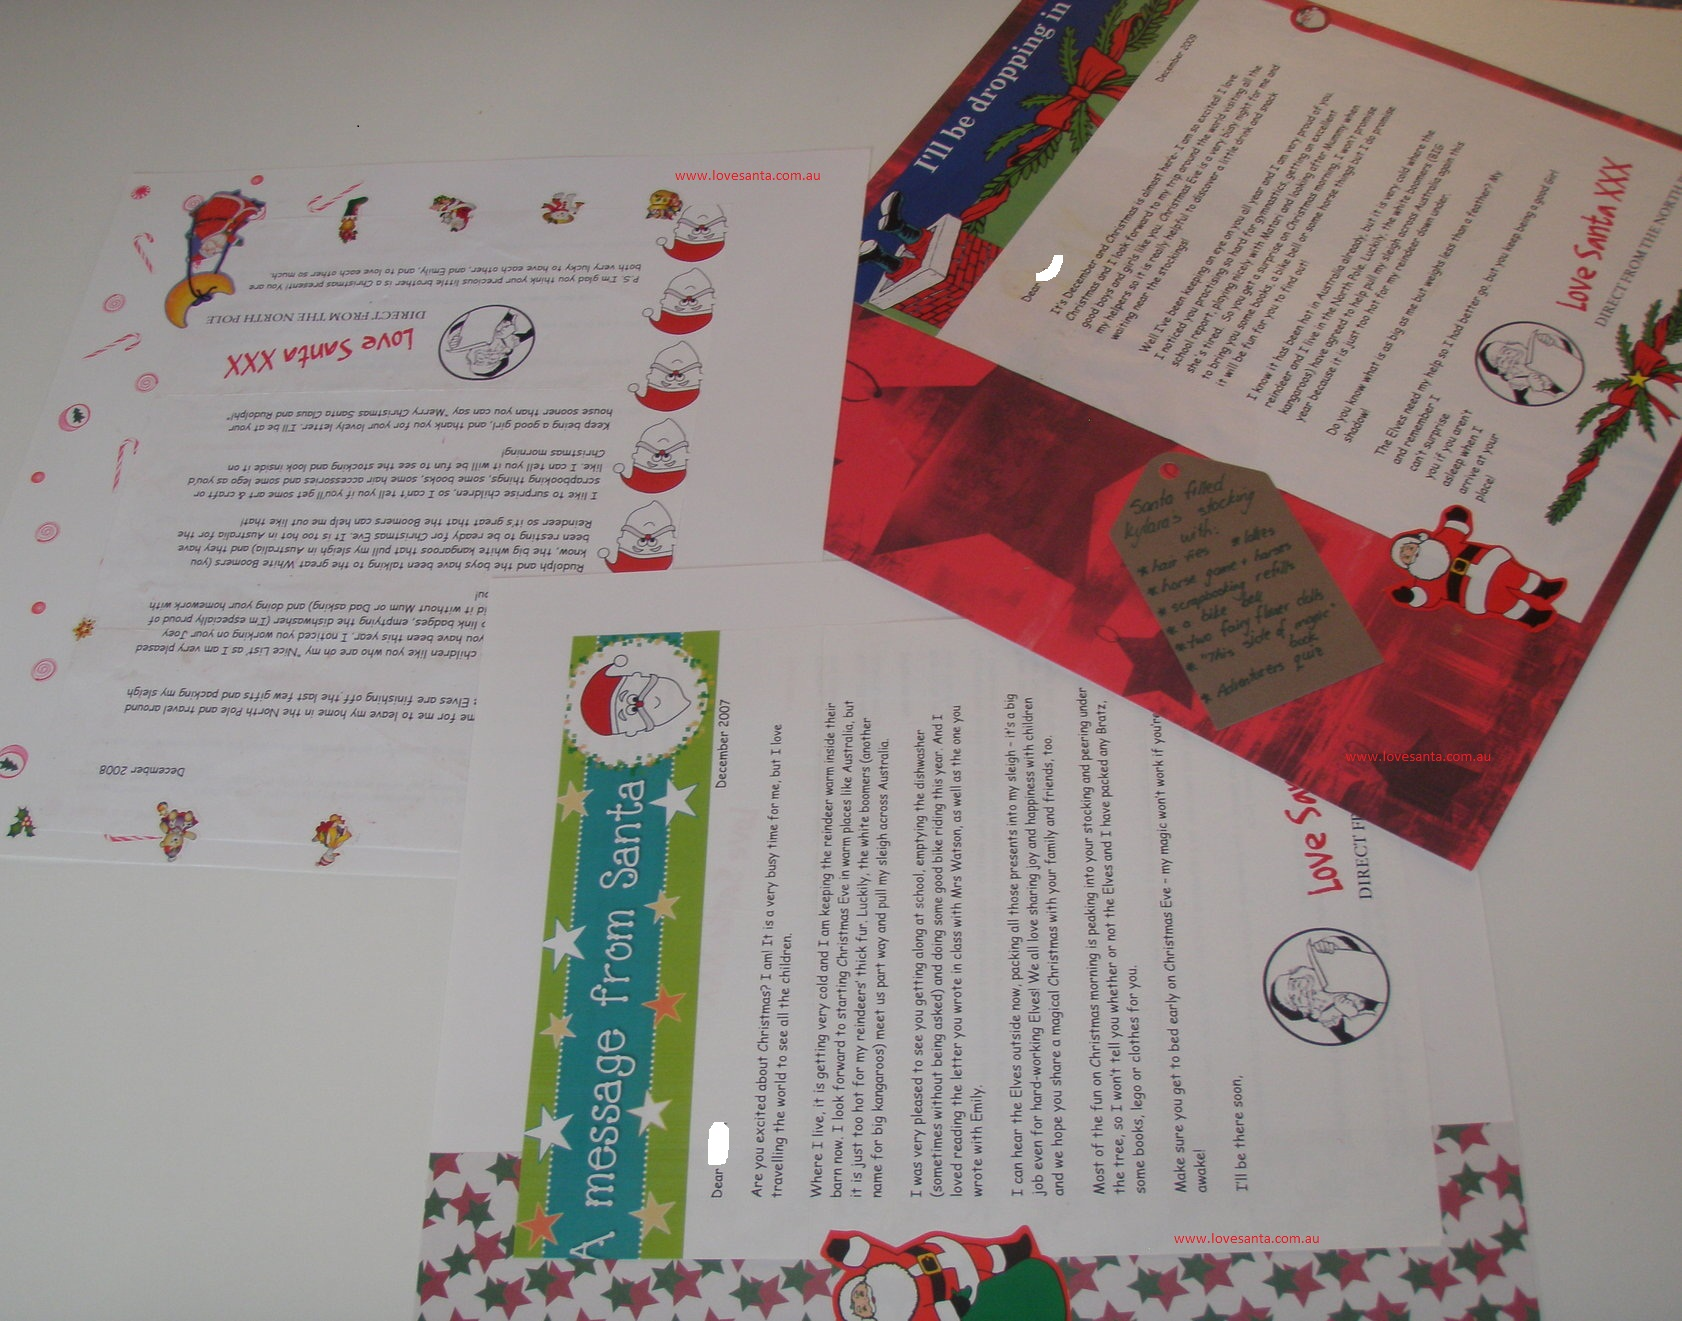 Scrapbook pages of Love Santa letters